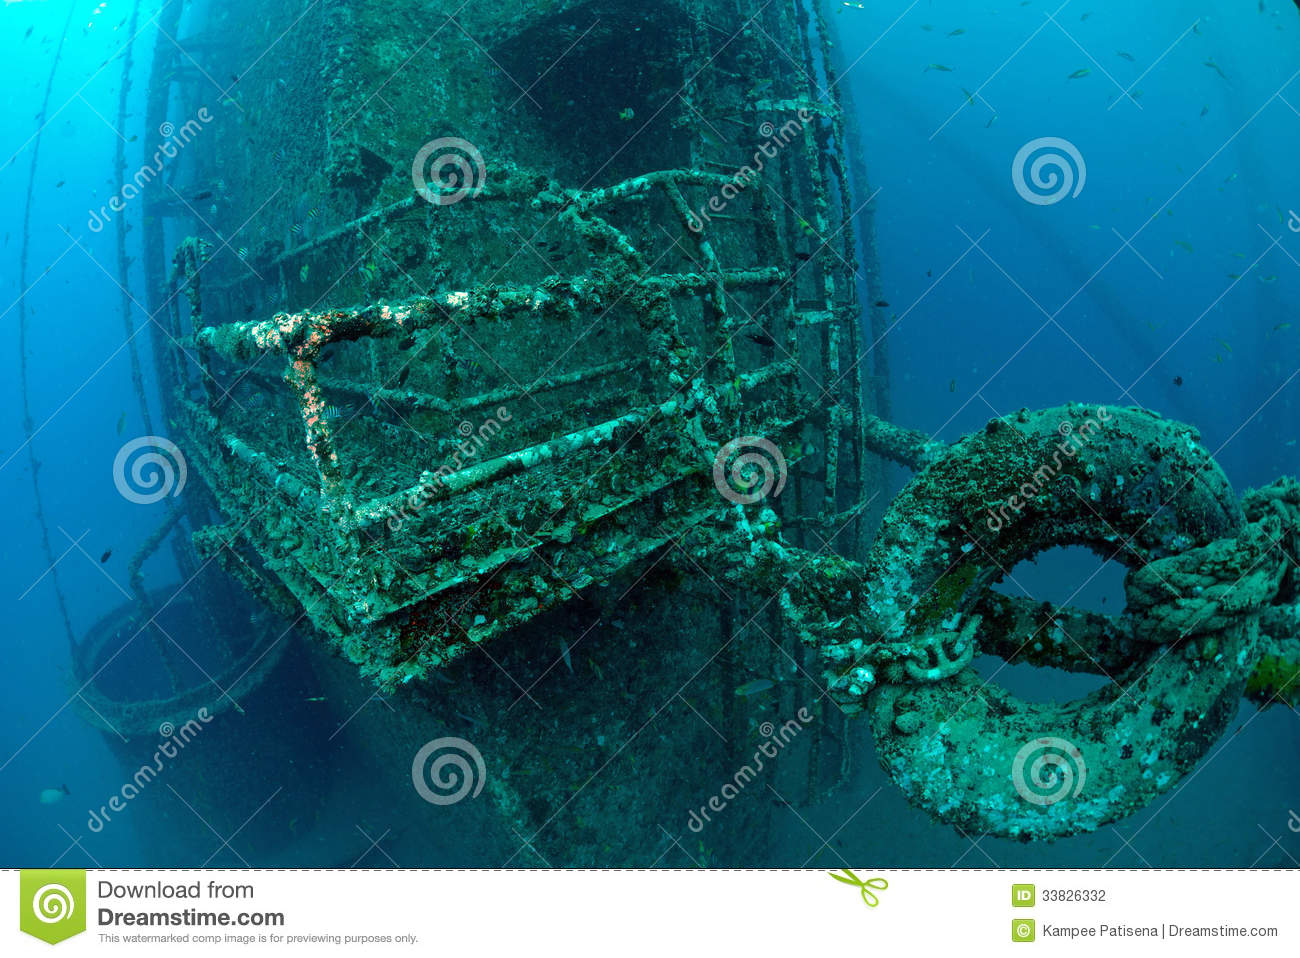 Underwater Oil Rig Stock Photography - Image: 33826332 | 1300 x 958 jpeg 223kB